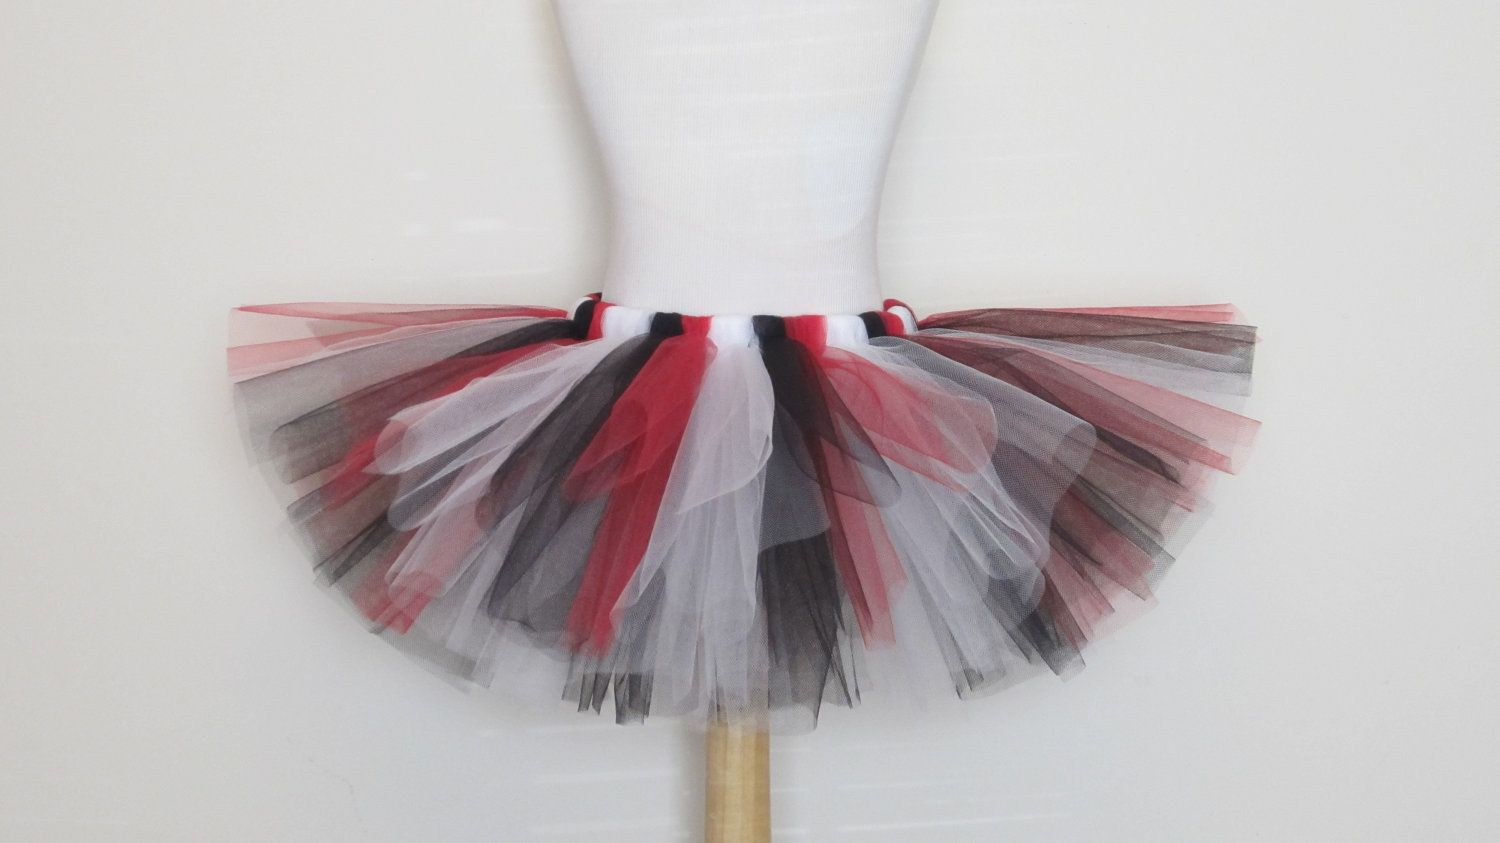 755545b08348 Queen of Hearts Tutu Skirt Black Red White Pirate Costume Baby Girls  Toddler Teen Adult 49ers by American Blossoms. $27.50, via Etsy.